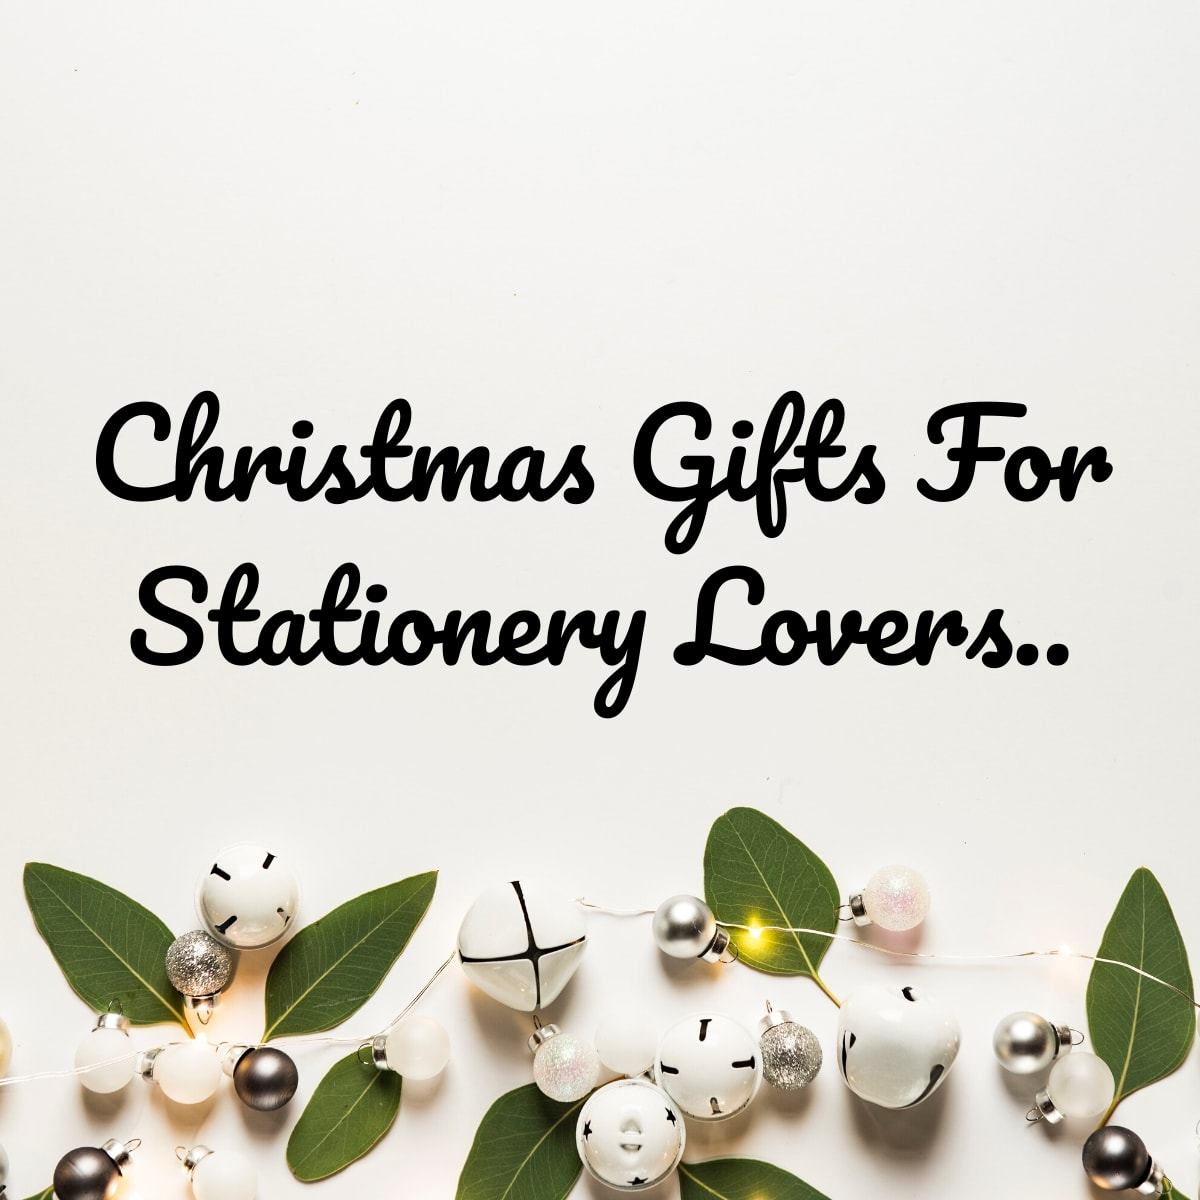 Christmas Gifts For Stationery Lovers